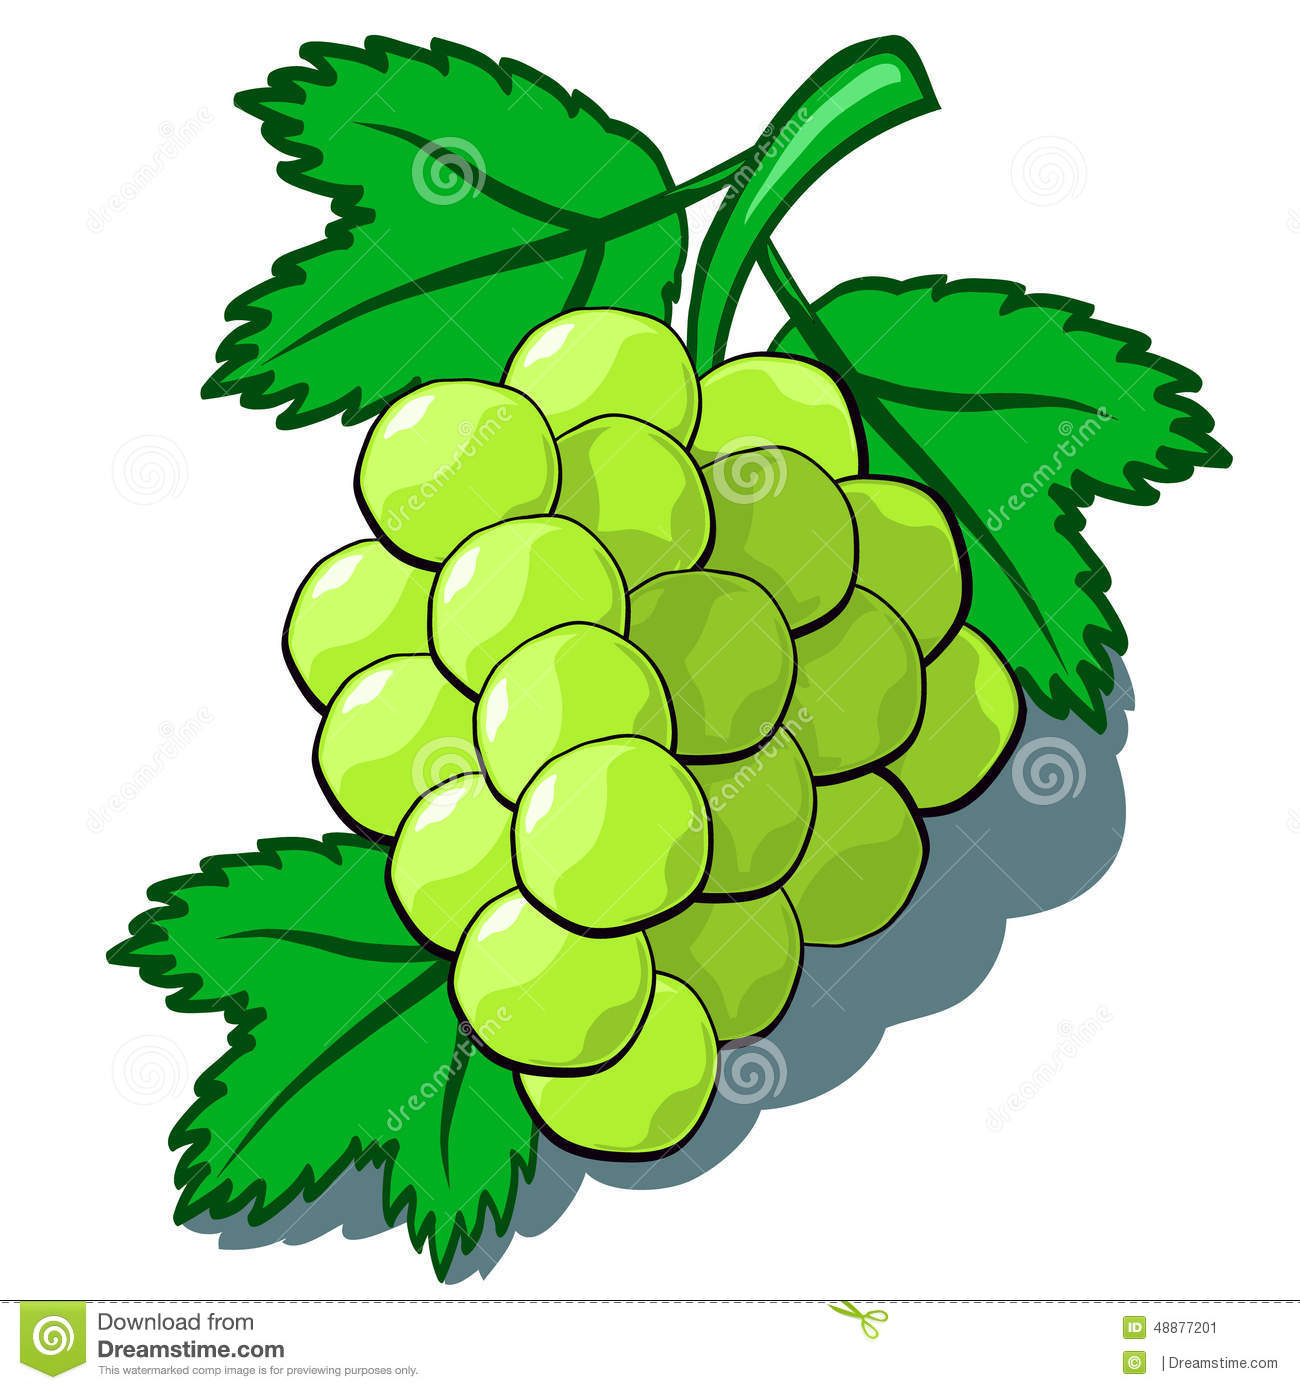 Green Grapes Stock Vector - Image: 48877201